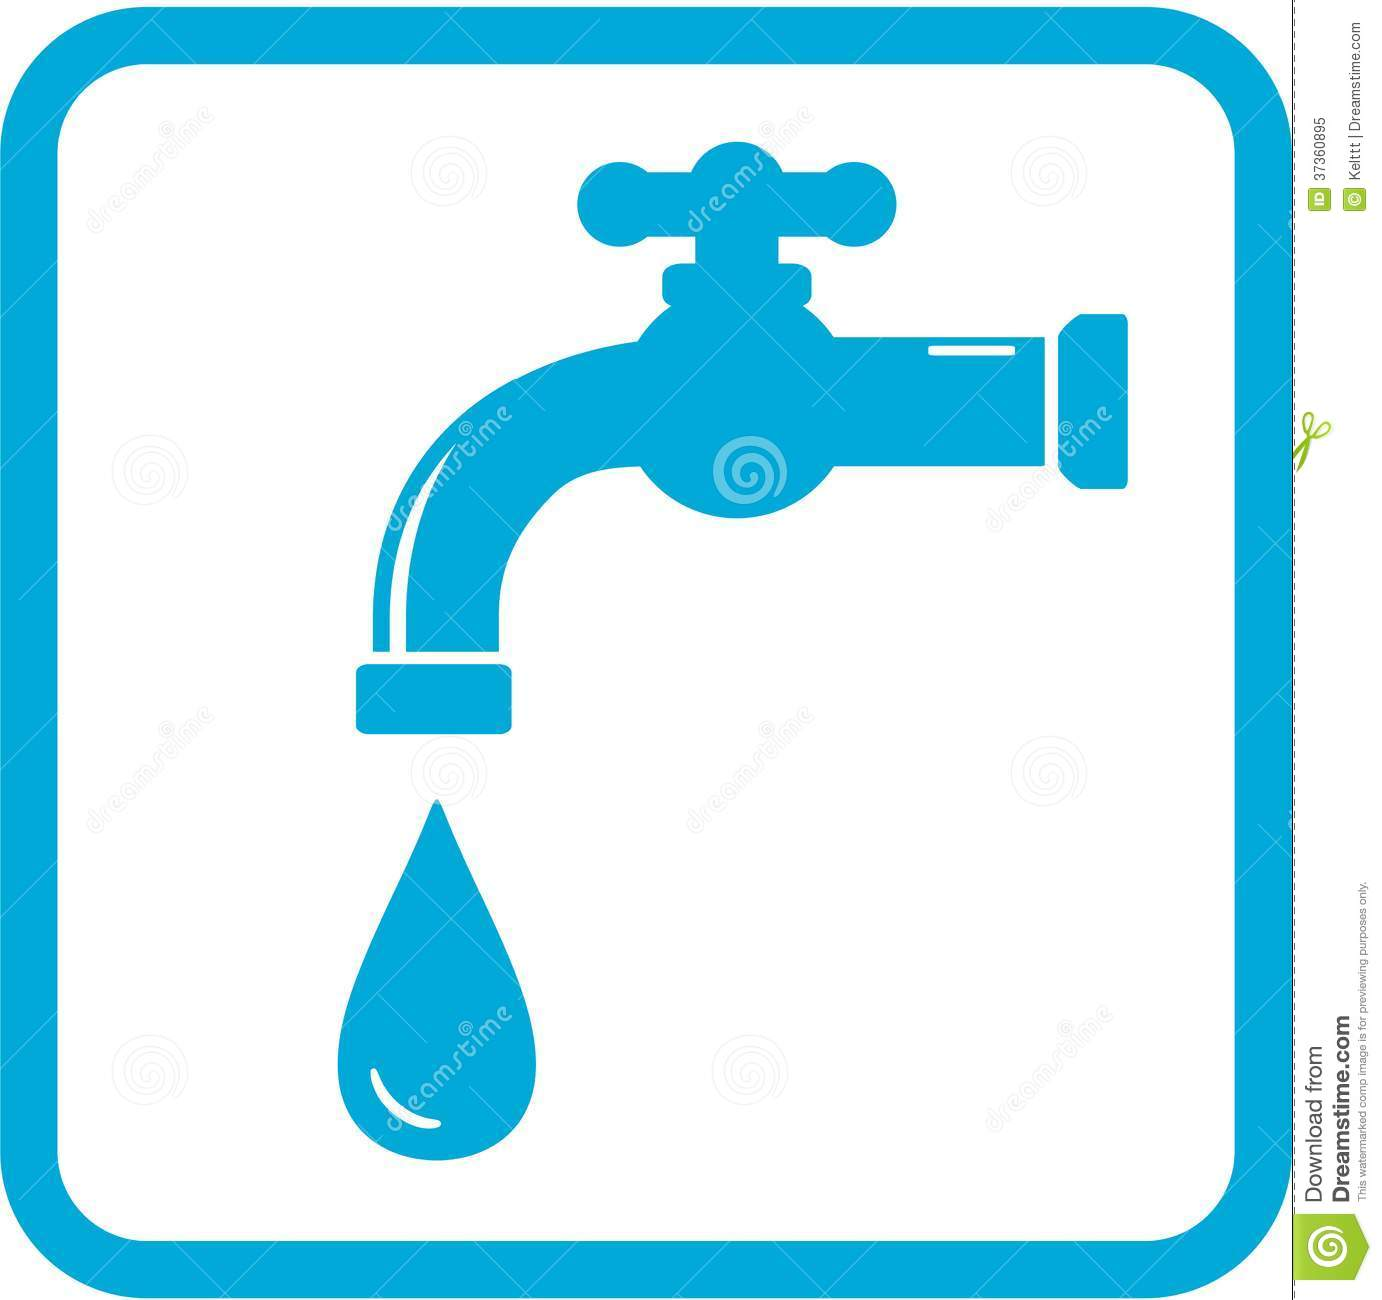 Icon With Tap. Water Symbol Royalty Free Stock Photo - Image: 37360895